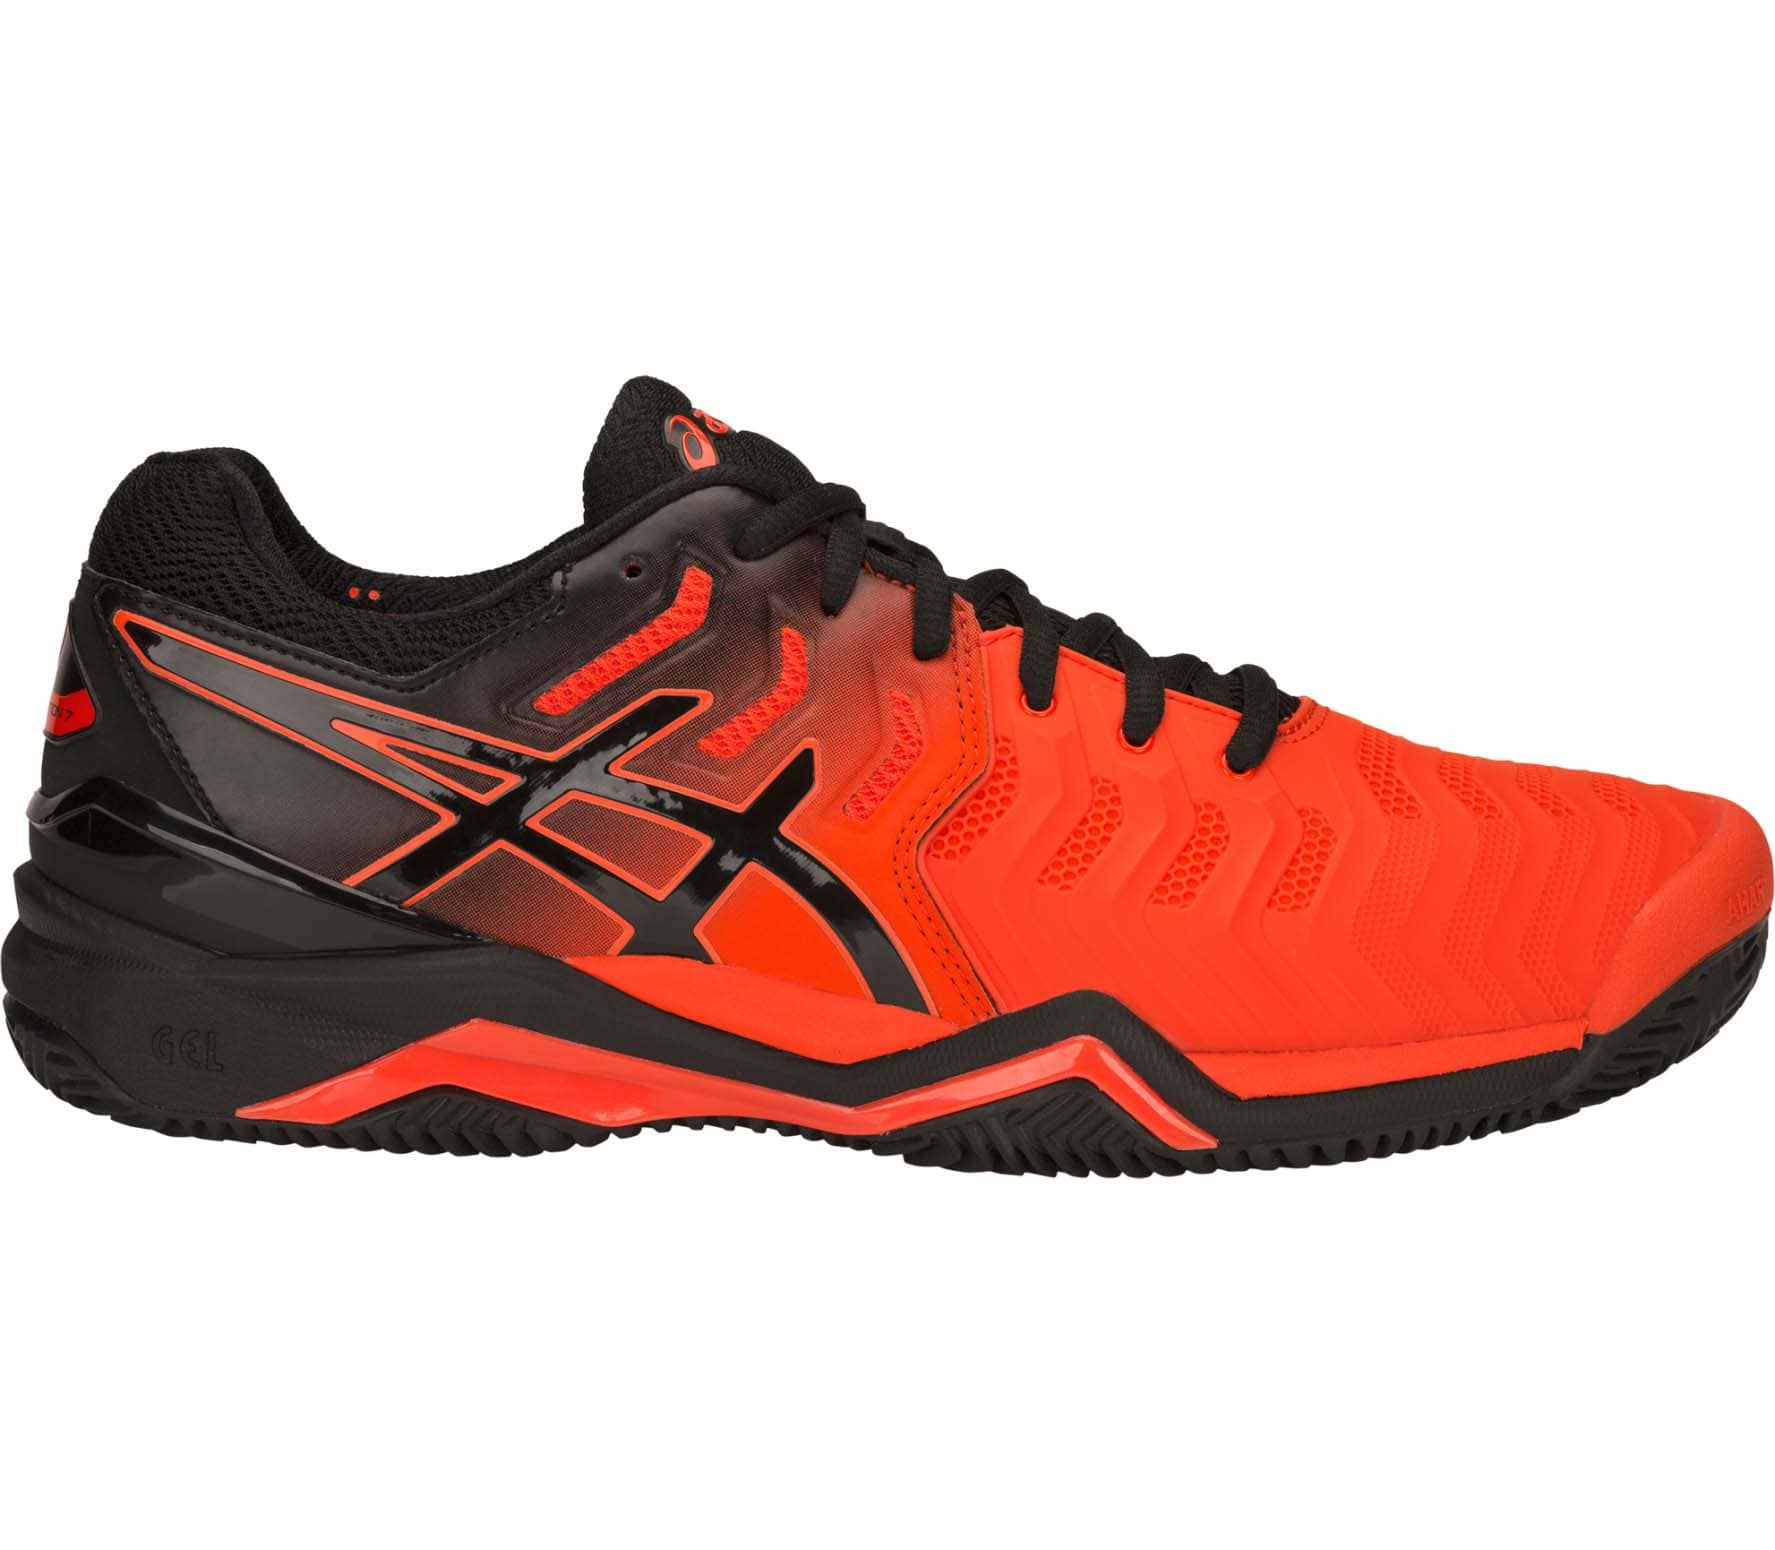 sports shoes aac25 9d6f8 ASICS - GEL-Resolution 7 Clay men s tennis shoes (red black)